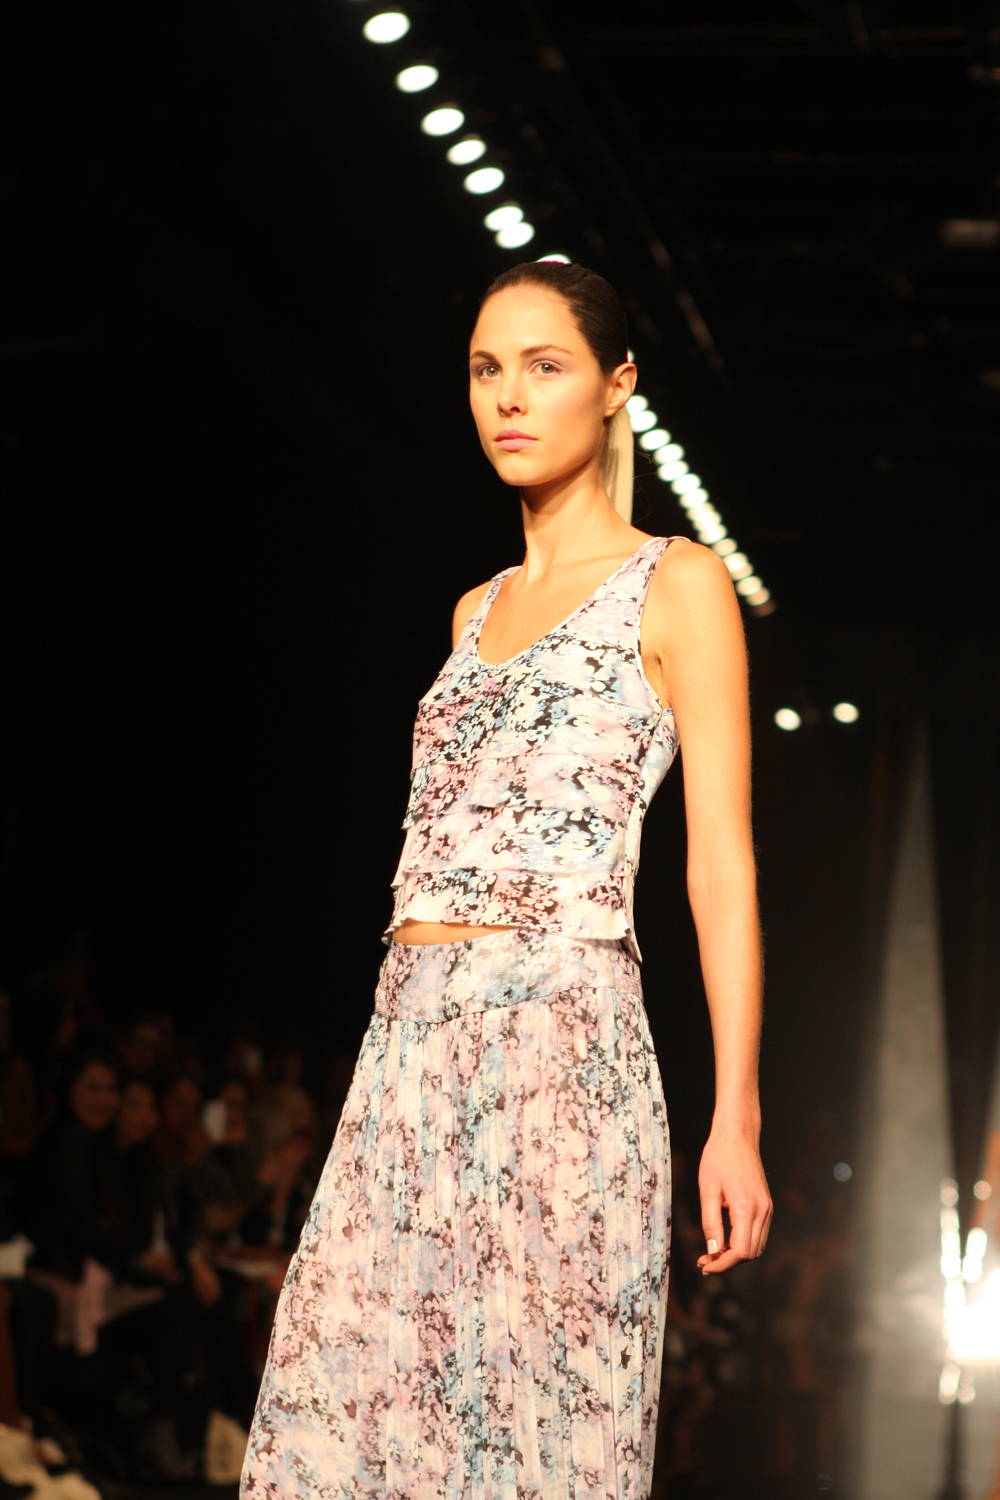 Buy Wacky wearable mbfwa beauty weighed picture trends